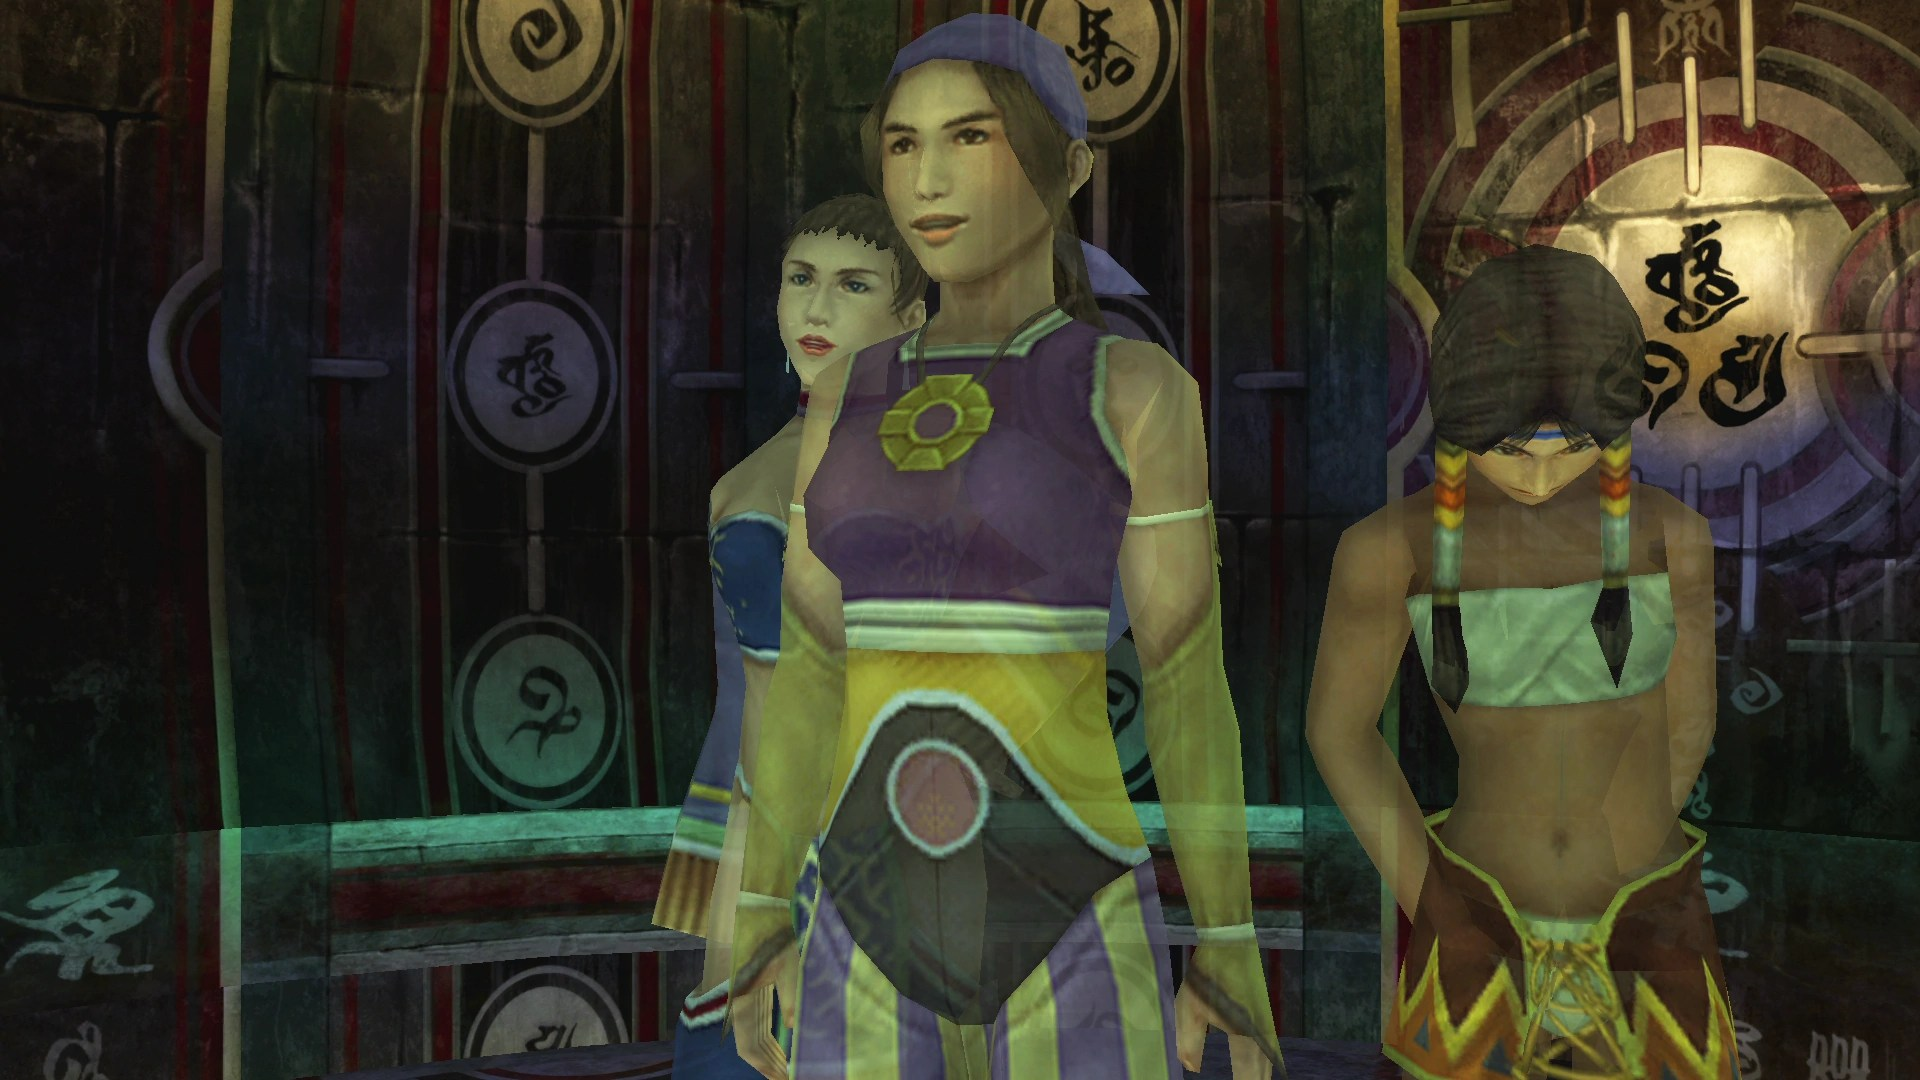 Calli The Final Fantasy Wiki Has More Final Fantasy Information Than Cid Could Research